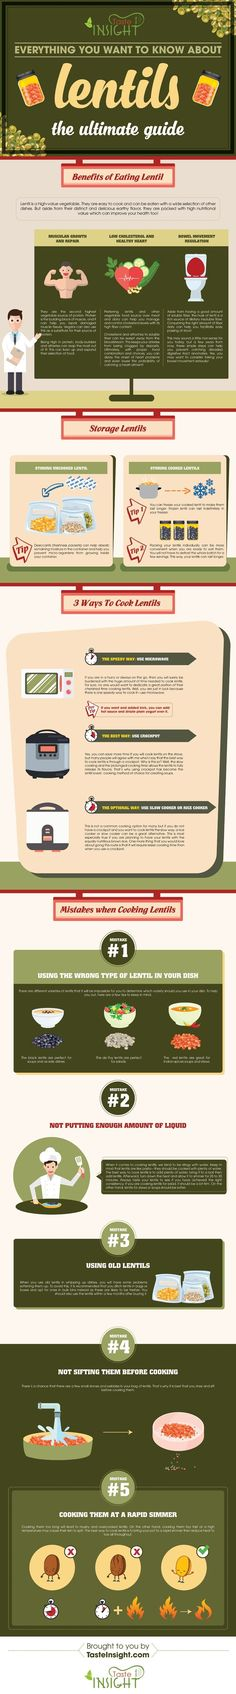 Lentil, without a doubt, has some of the most amazing health benefits. It makes sure your body is getting all the right things it needs. You might want to start cooking lentils! Here's the ultimate guide on how to cook lentils in different ways, how to make sure you're storing them properly, what mistakes you must avoid, etc. Infographic by – Taste Insight